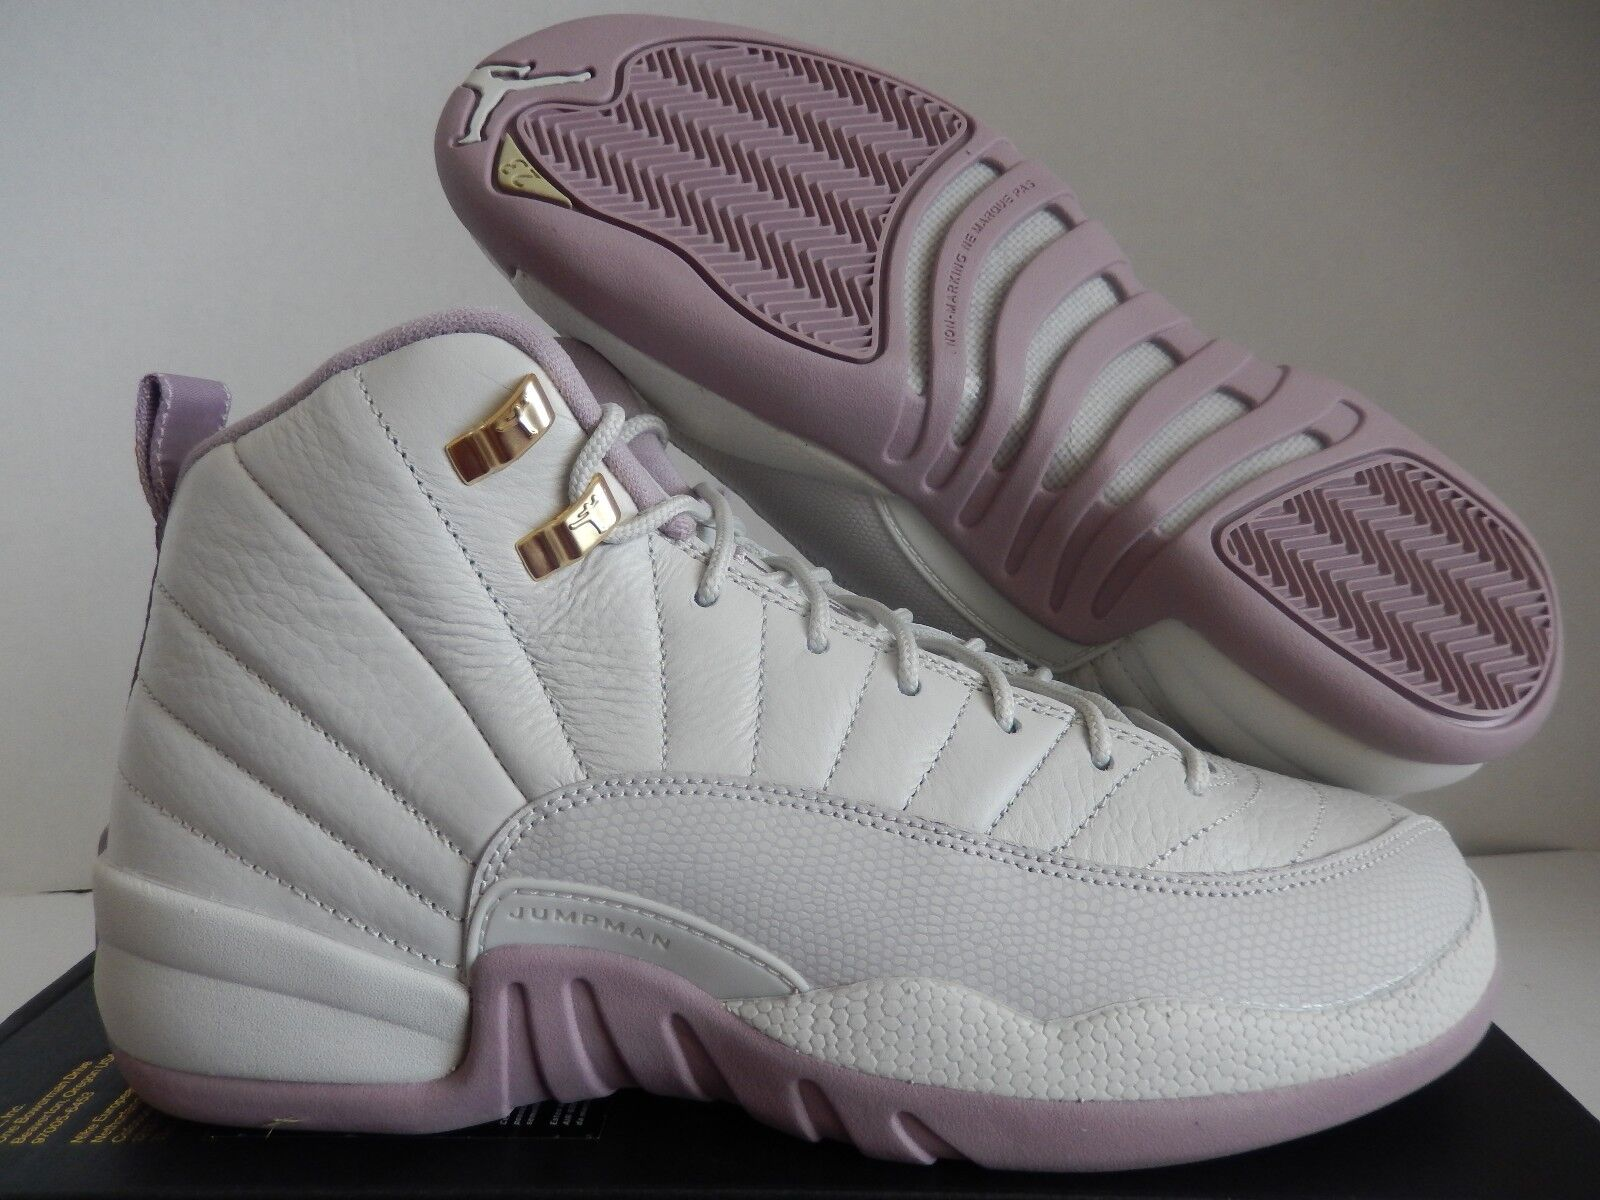 wholesale dealer deb84 490fa NIKE AIR JORDAN 12 RETRO PREMIUM HC GG HEIRESS SZ 9Y-MENS SZ 9 [845028-025]